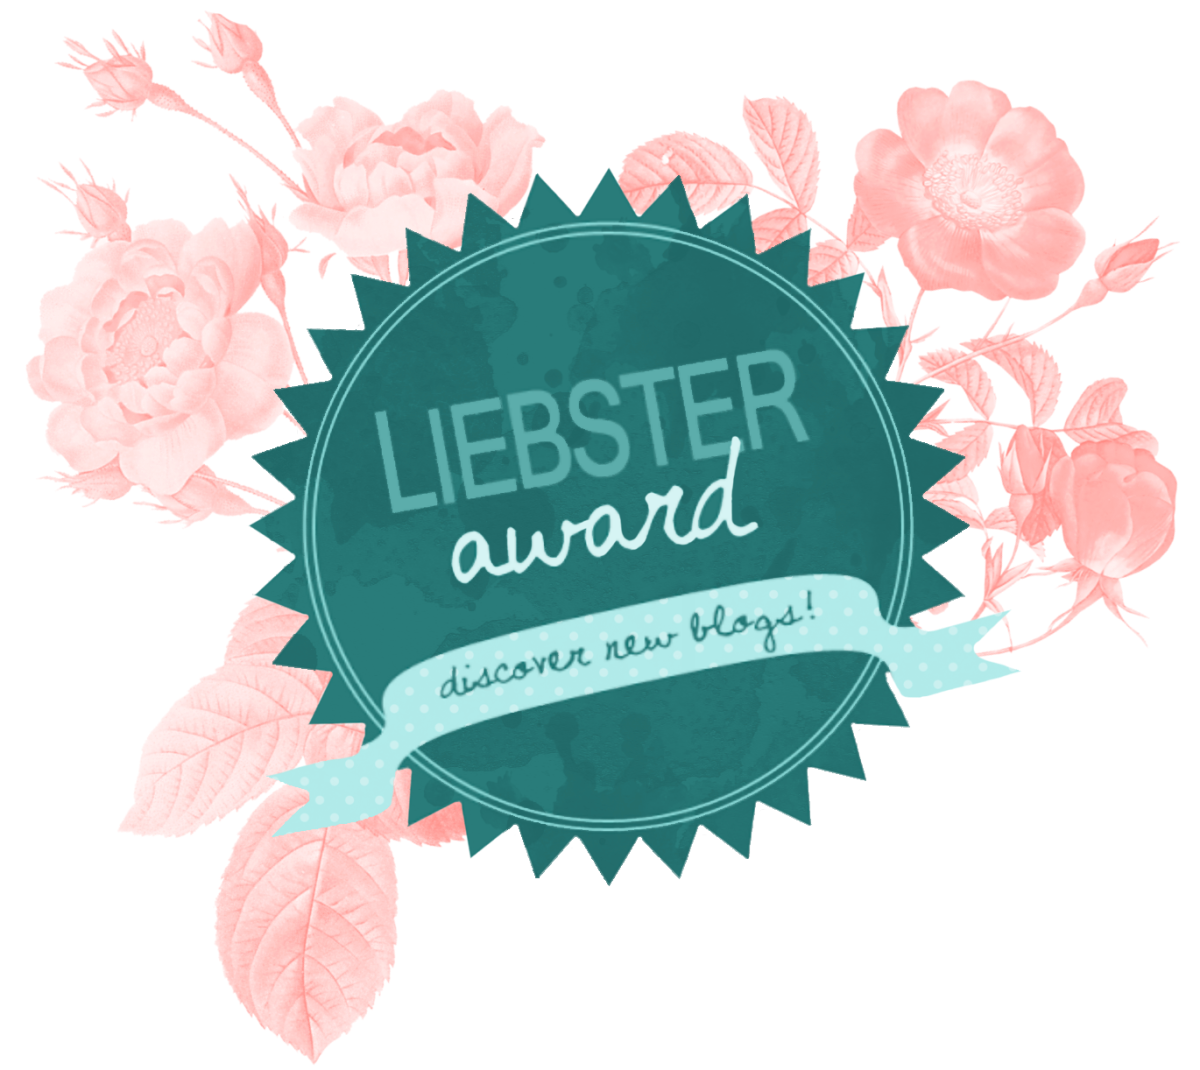 Liebster Awards #2, #3 and #4